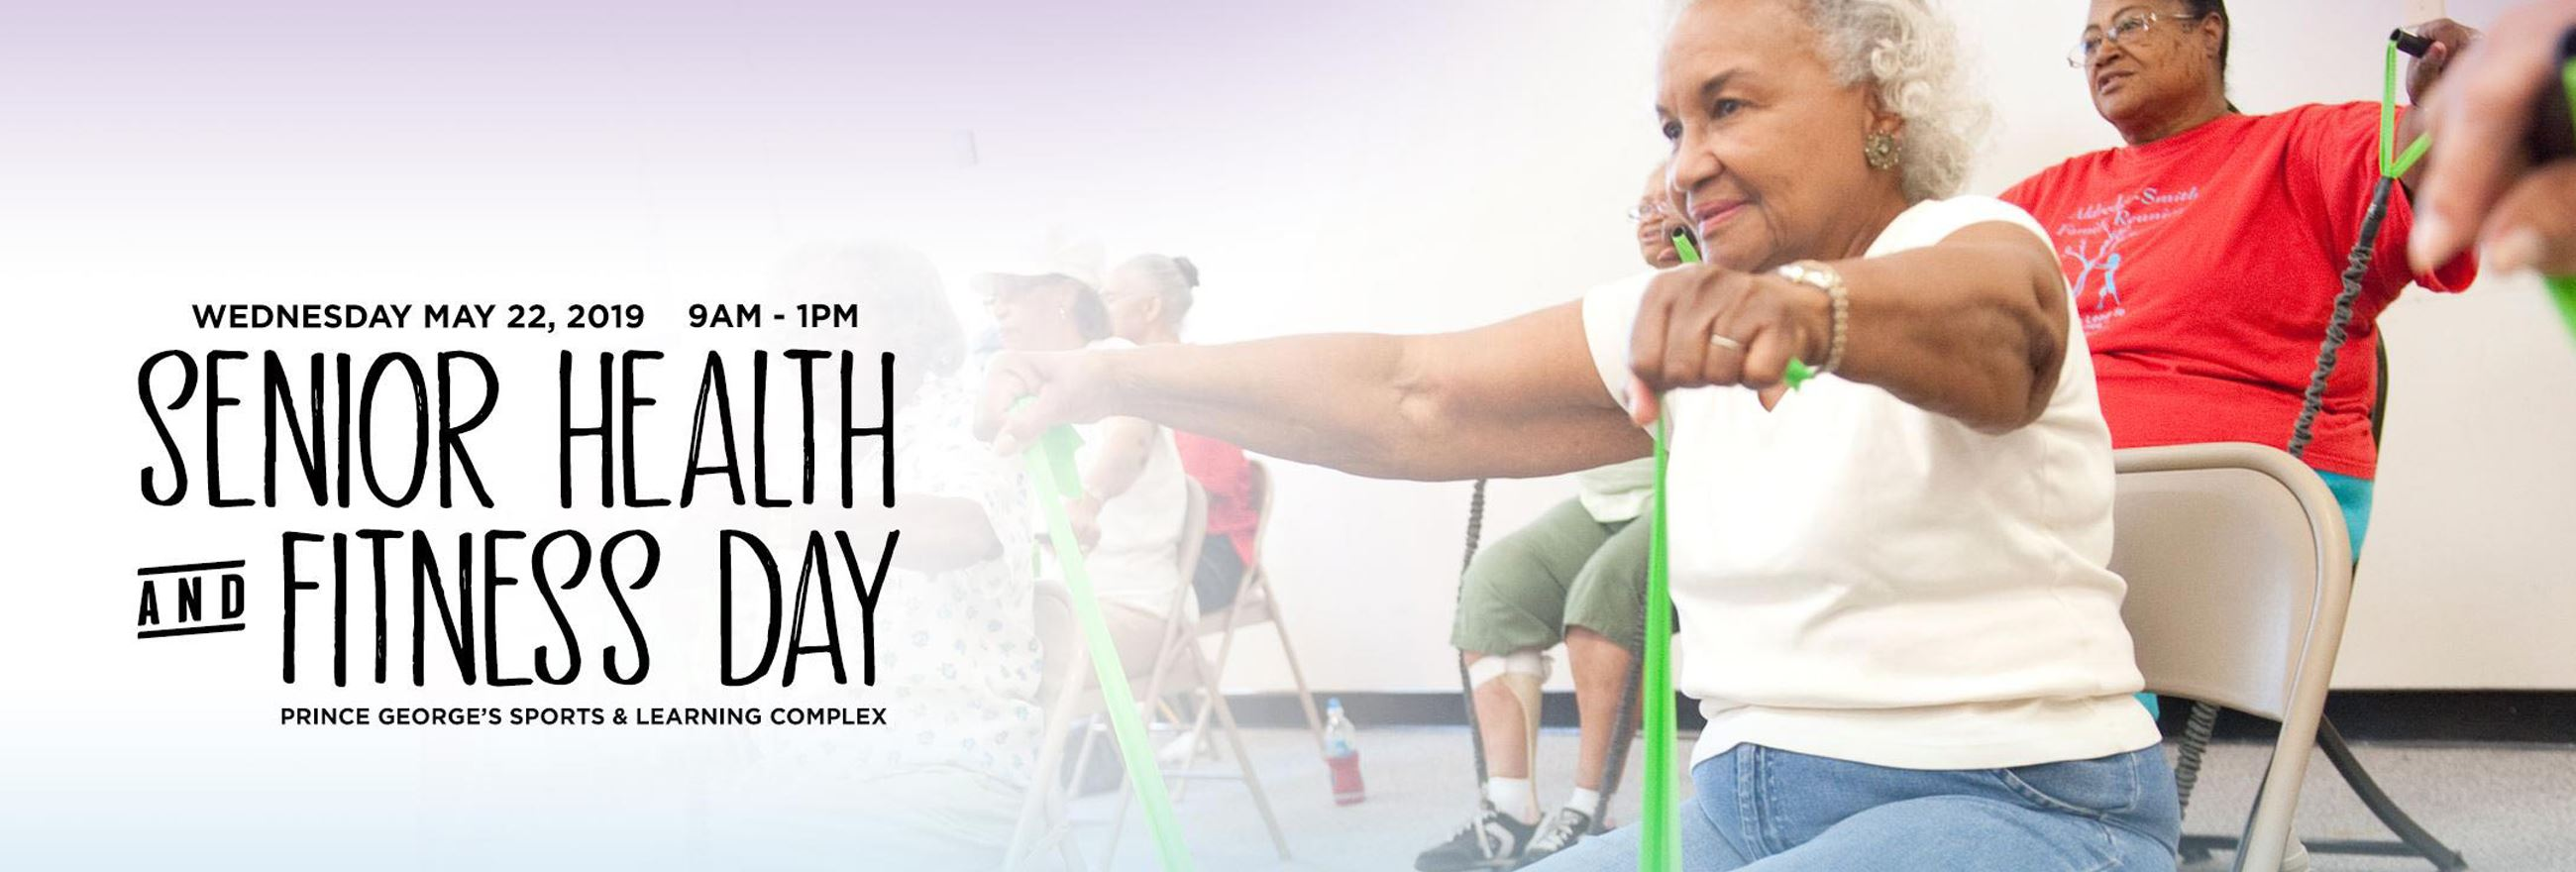 senior health and fitness day is Wednesday, May 22